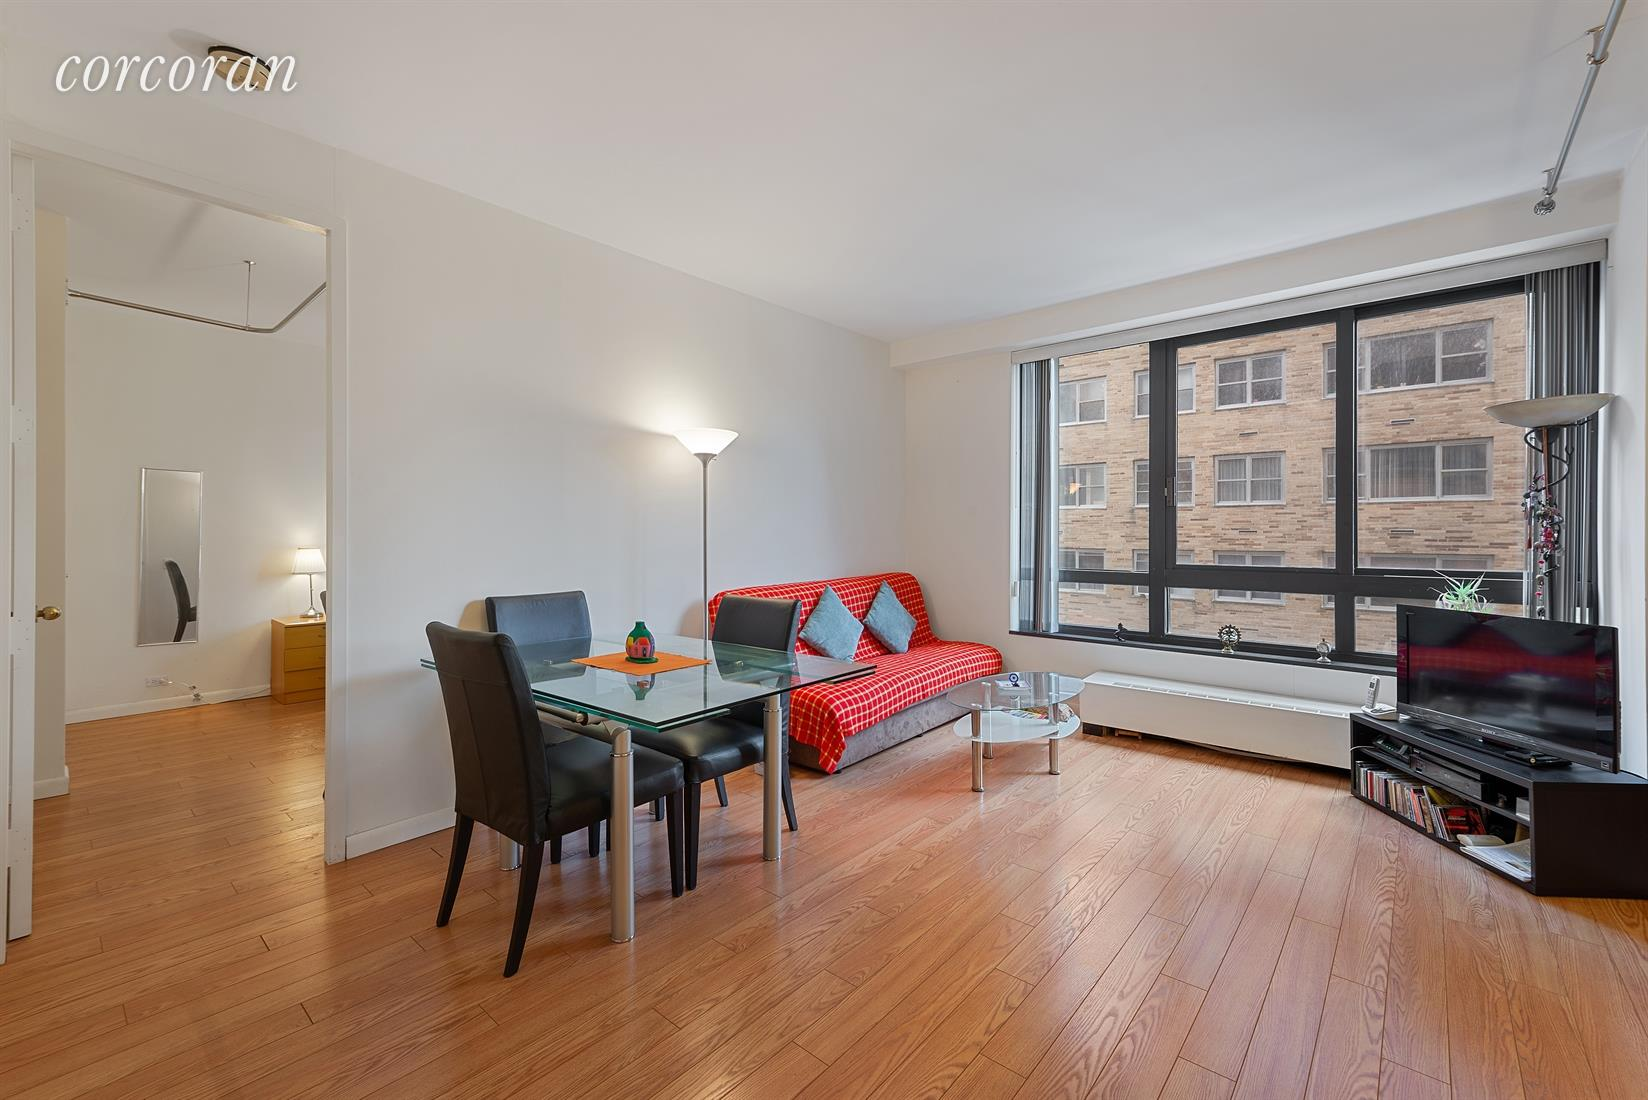 Fantastic one bedroom, one bathroom apartment available for sale at 100 United Nations Plaza. This quiet, spacious and functional unit has a large living room with a separate dining alcove, which could also be used as an office or sleeping area, with oversized north-facing windows. The galley kitchen has black and stainless steel appliances including a dishwasher and a new refrigerator. The large bedroom comfortably accommodates a king size bed and has an en suite marble bathroom with a Jacuzzi tub. Additional features of this unit include new hardwood floors, 3 extra-large closets and 9' ceilings.  Tenant in place through June 2021. Located on East 48th Street and First Avenue, 100 United Nations Plaza is a white-glove, full service condominium in Manhattan's Turtle Bay neighborhood. Greeting residents with beautifully landscaped gardens and waterfalls, this impeccably run building offers a 24-hour doorman, valet and concierge service, on-site management office, renovated lobby and resident's lounge, common laundry room, fitness center and direct access to a 24-hour attended parking garage. Conveniently located to transportation and many great shops and restaurants. Pet friendly (1 dog, maximum 50 lbs.)Showing by appointment only.